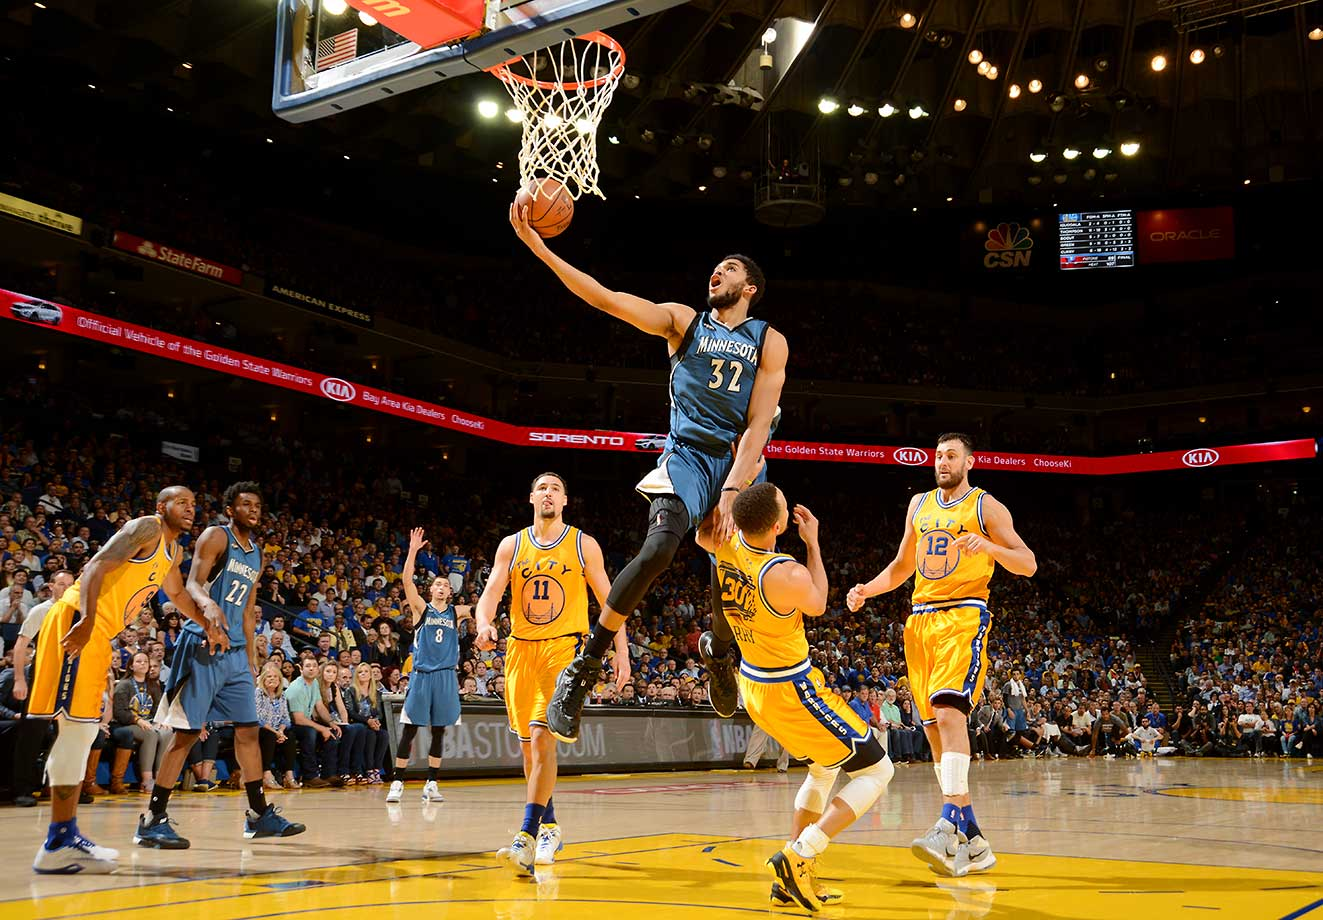 Steph Curry and the Warriors had no luck slowing down Karl-Anthony Towns and Minnesota on Tuesday, losing 124-117 in overtime.